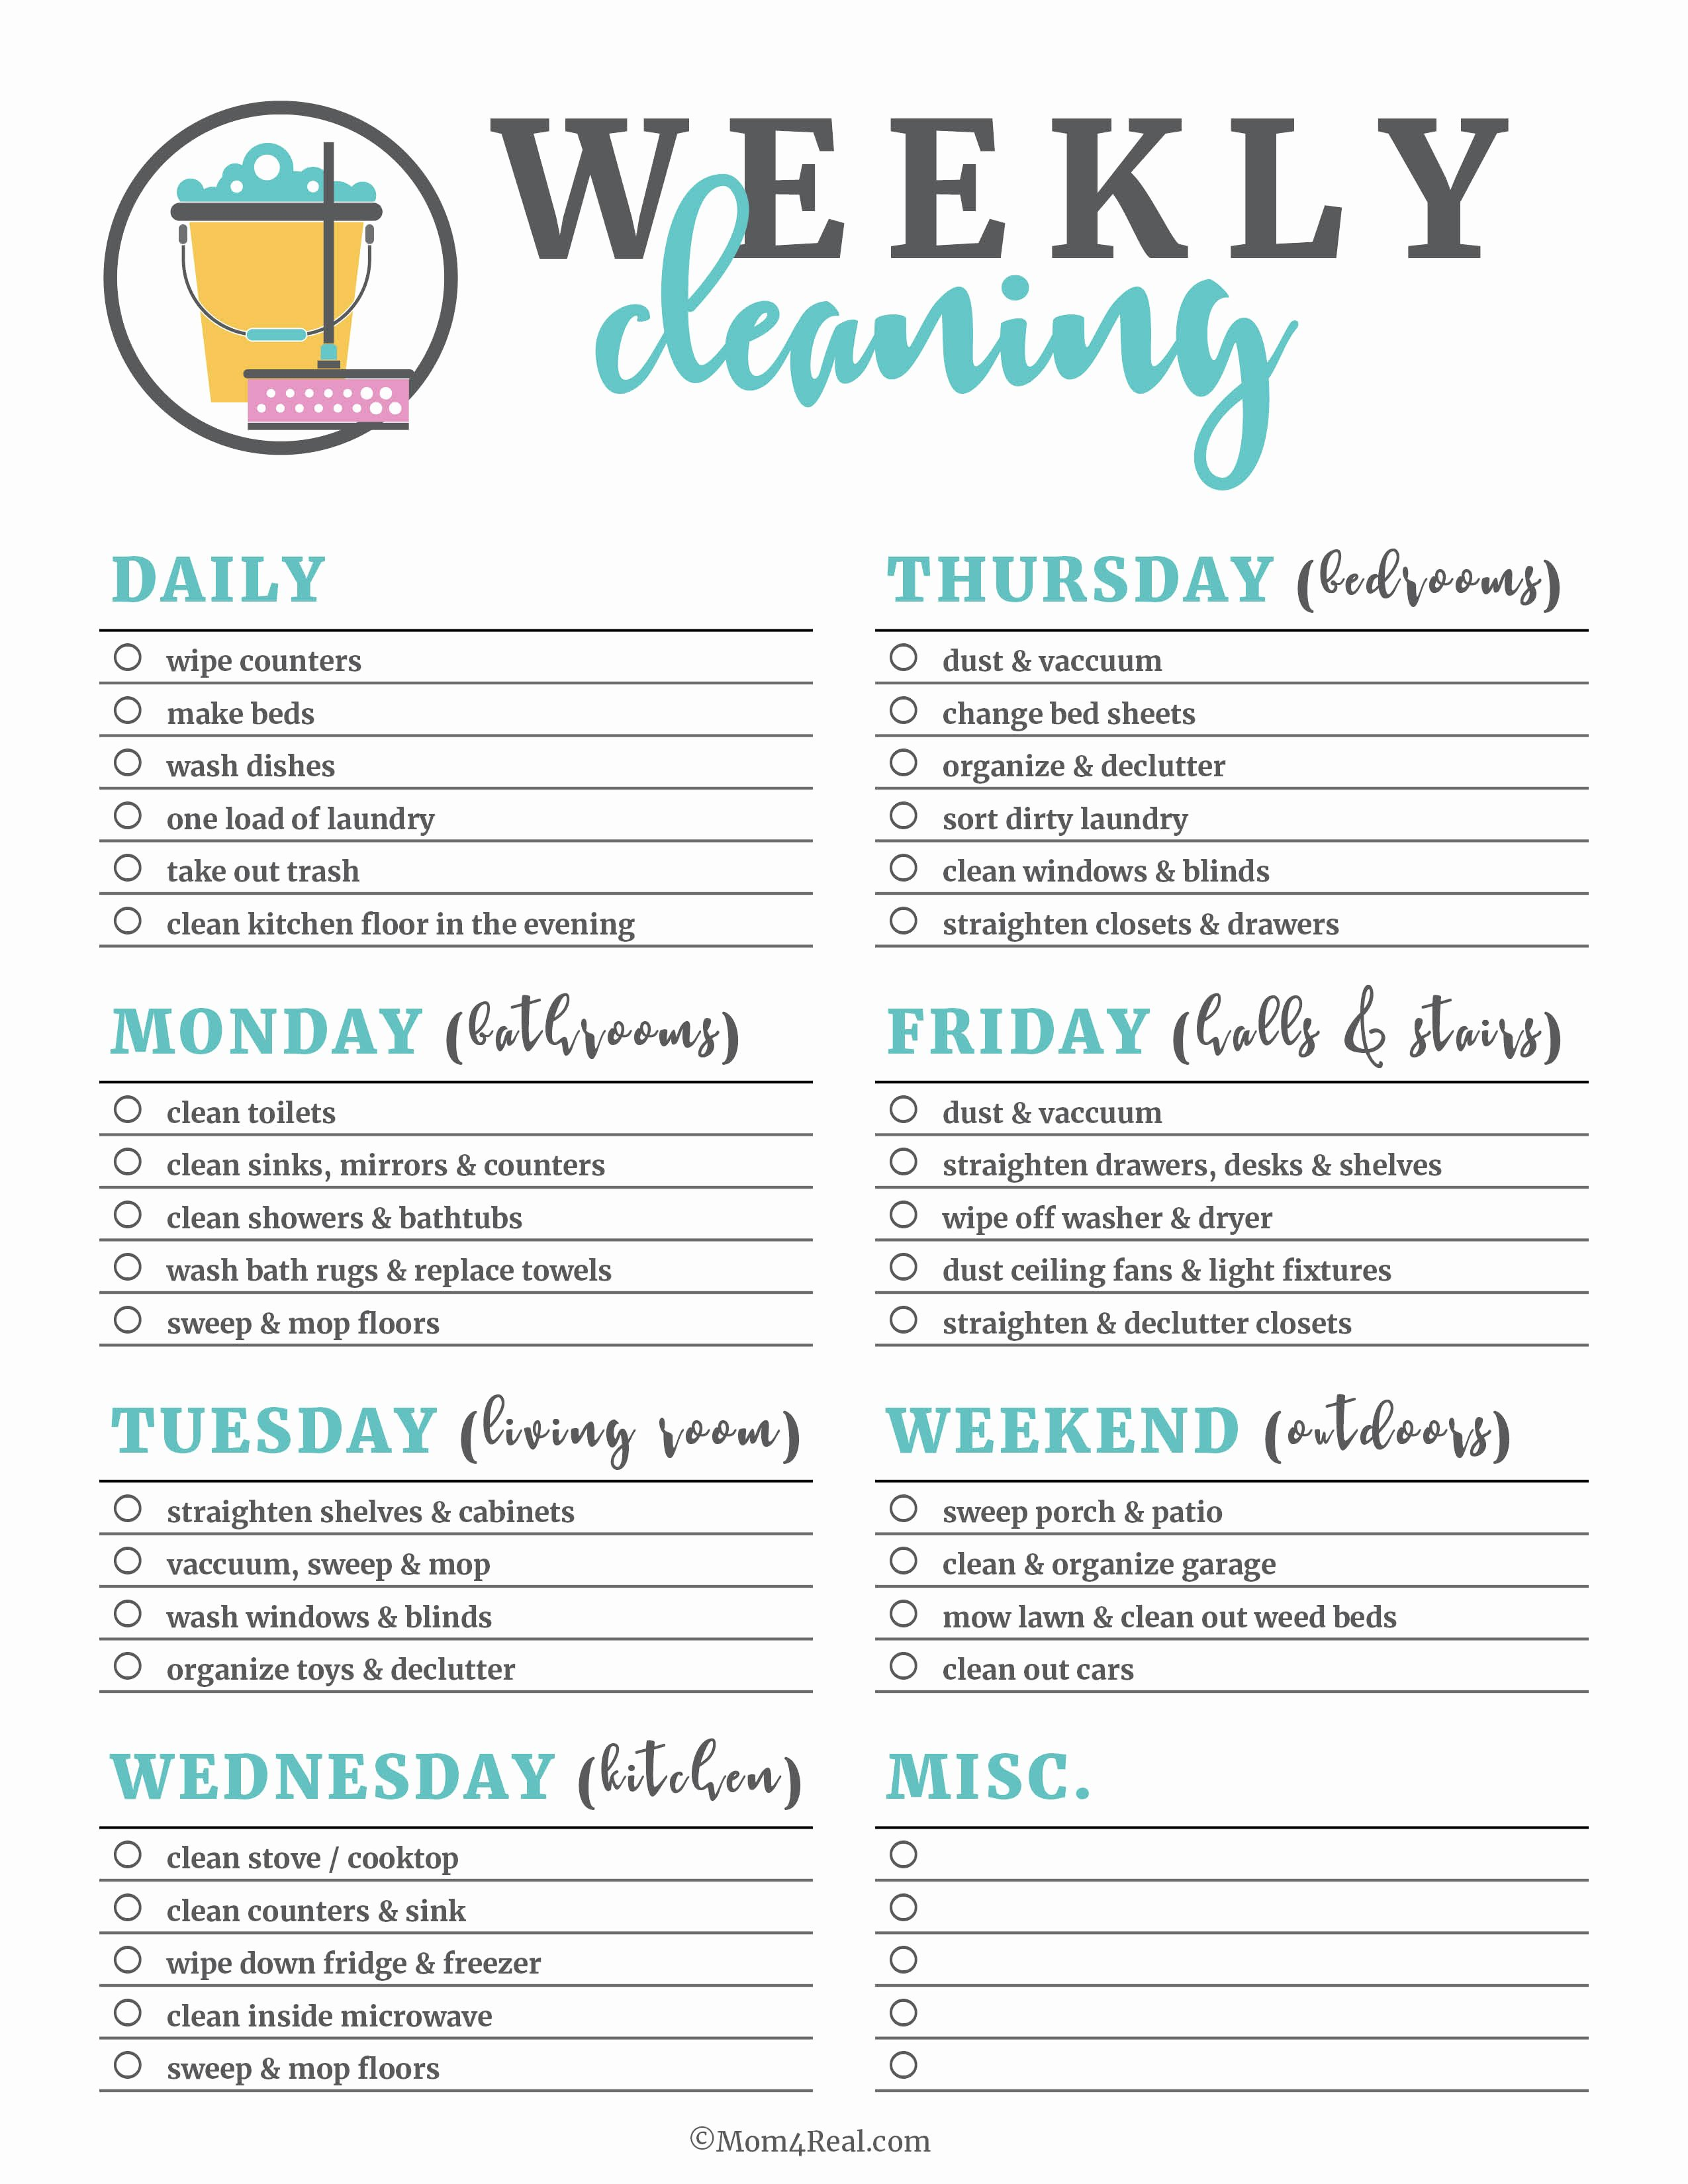 House Cleaning Checklist Template Awesome Printable Cleaning Checklists for Daily Weekly and